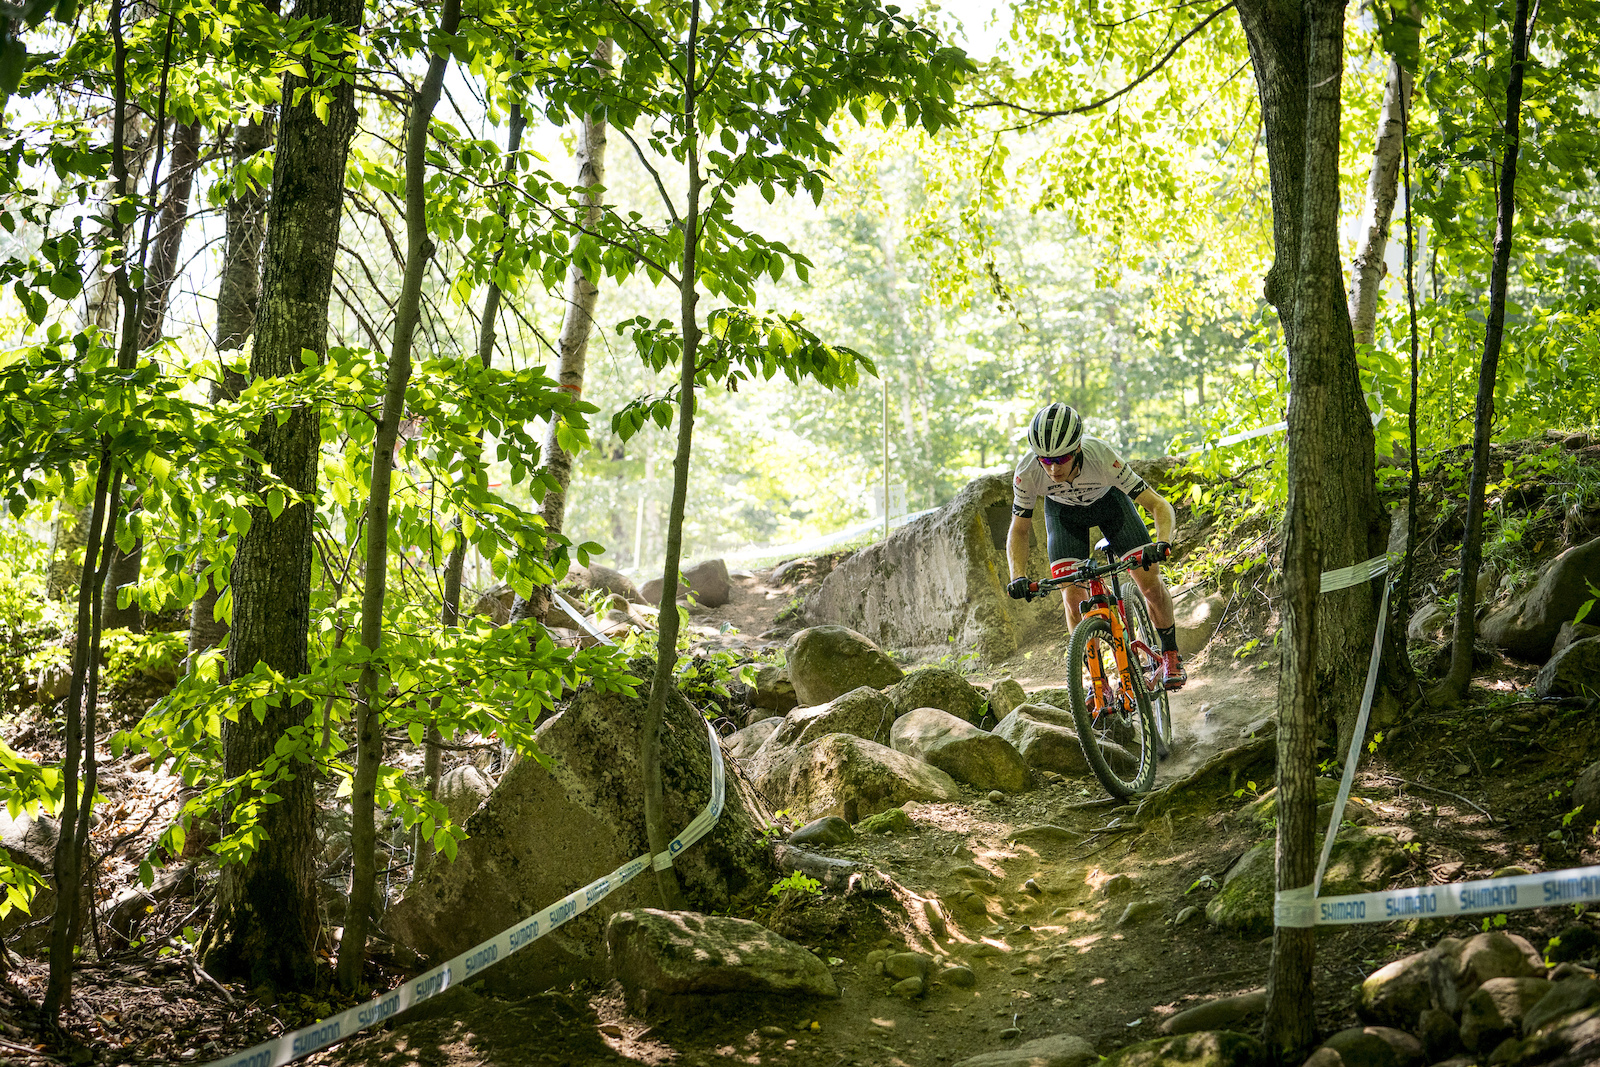 Cooper gets right to the meat and potatoes of the track the rocks and roots of MSA.